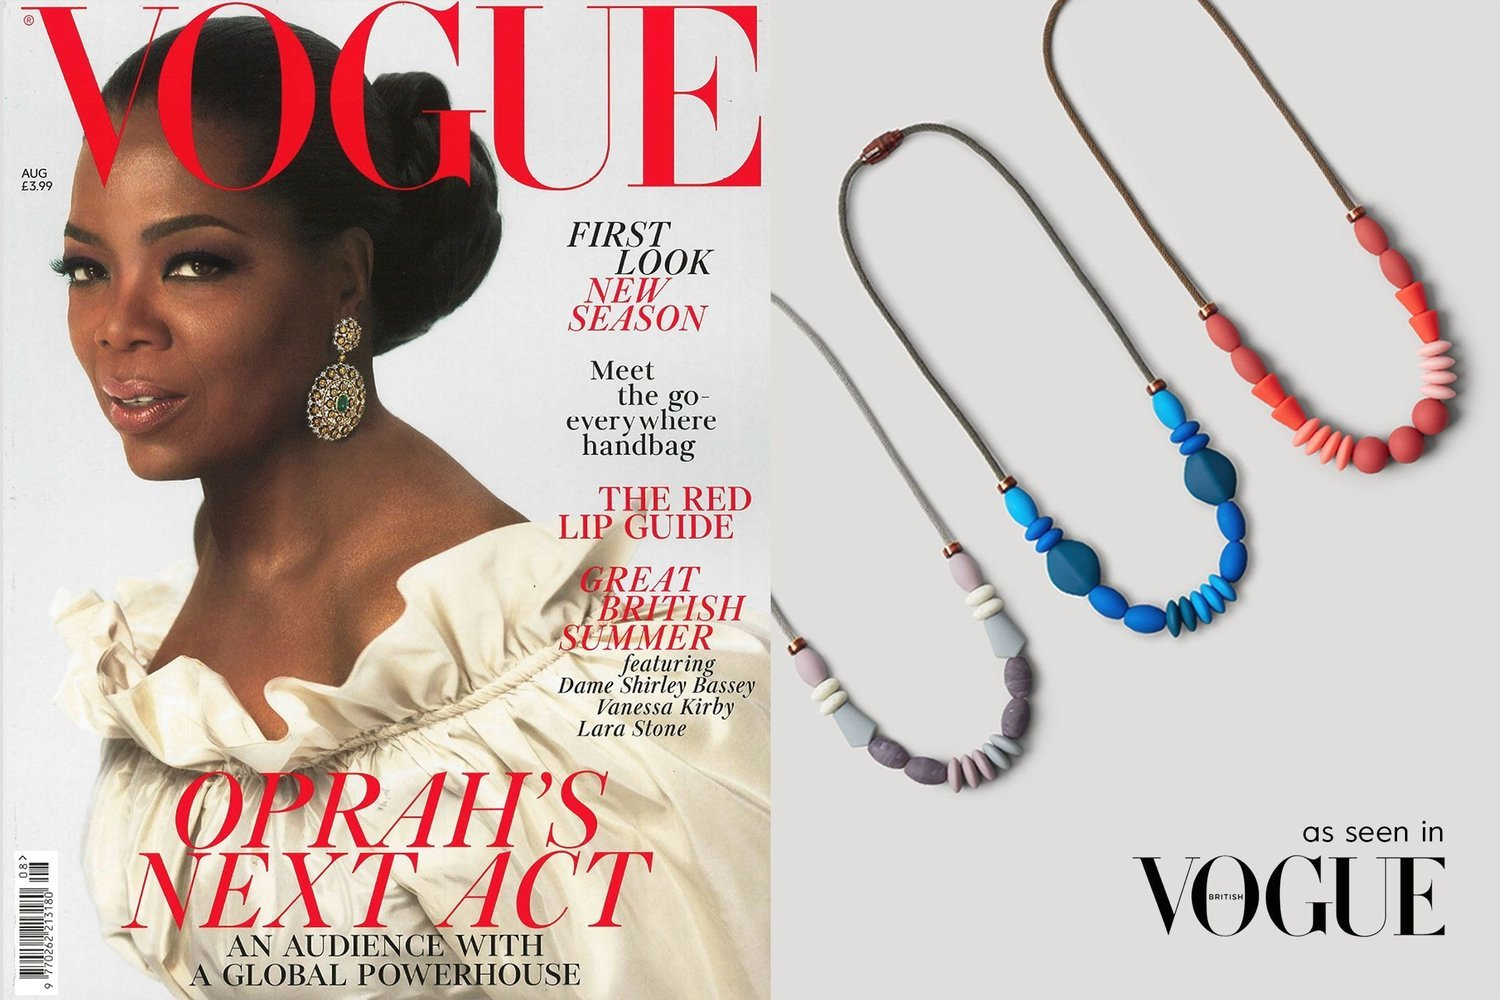 british vogue product feature image